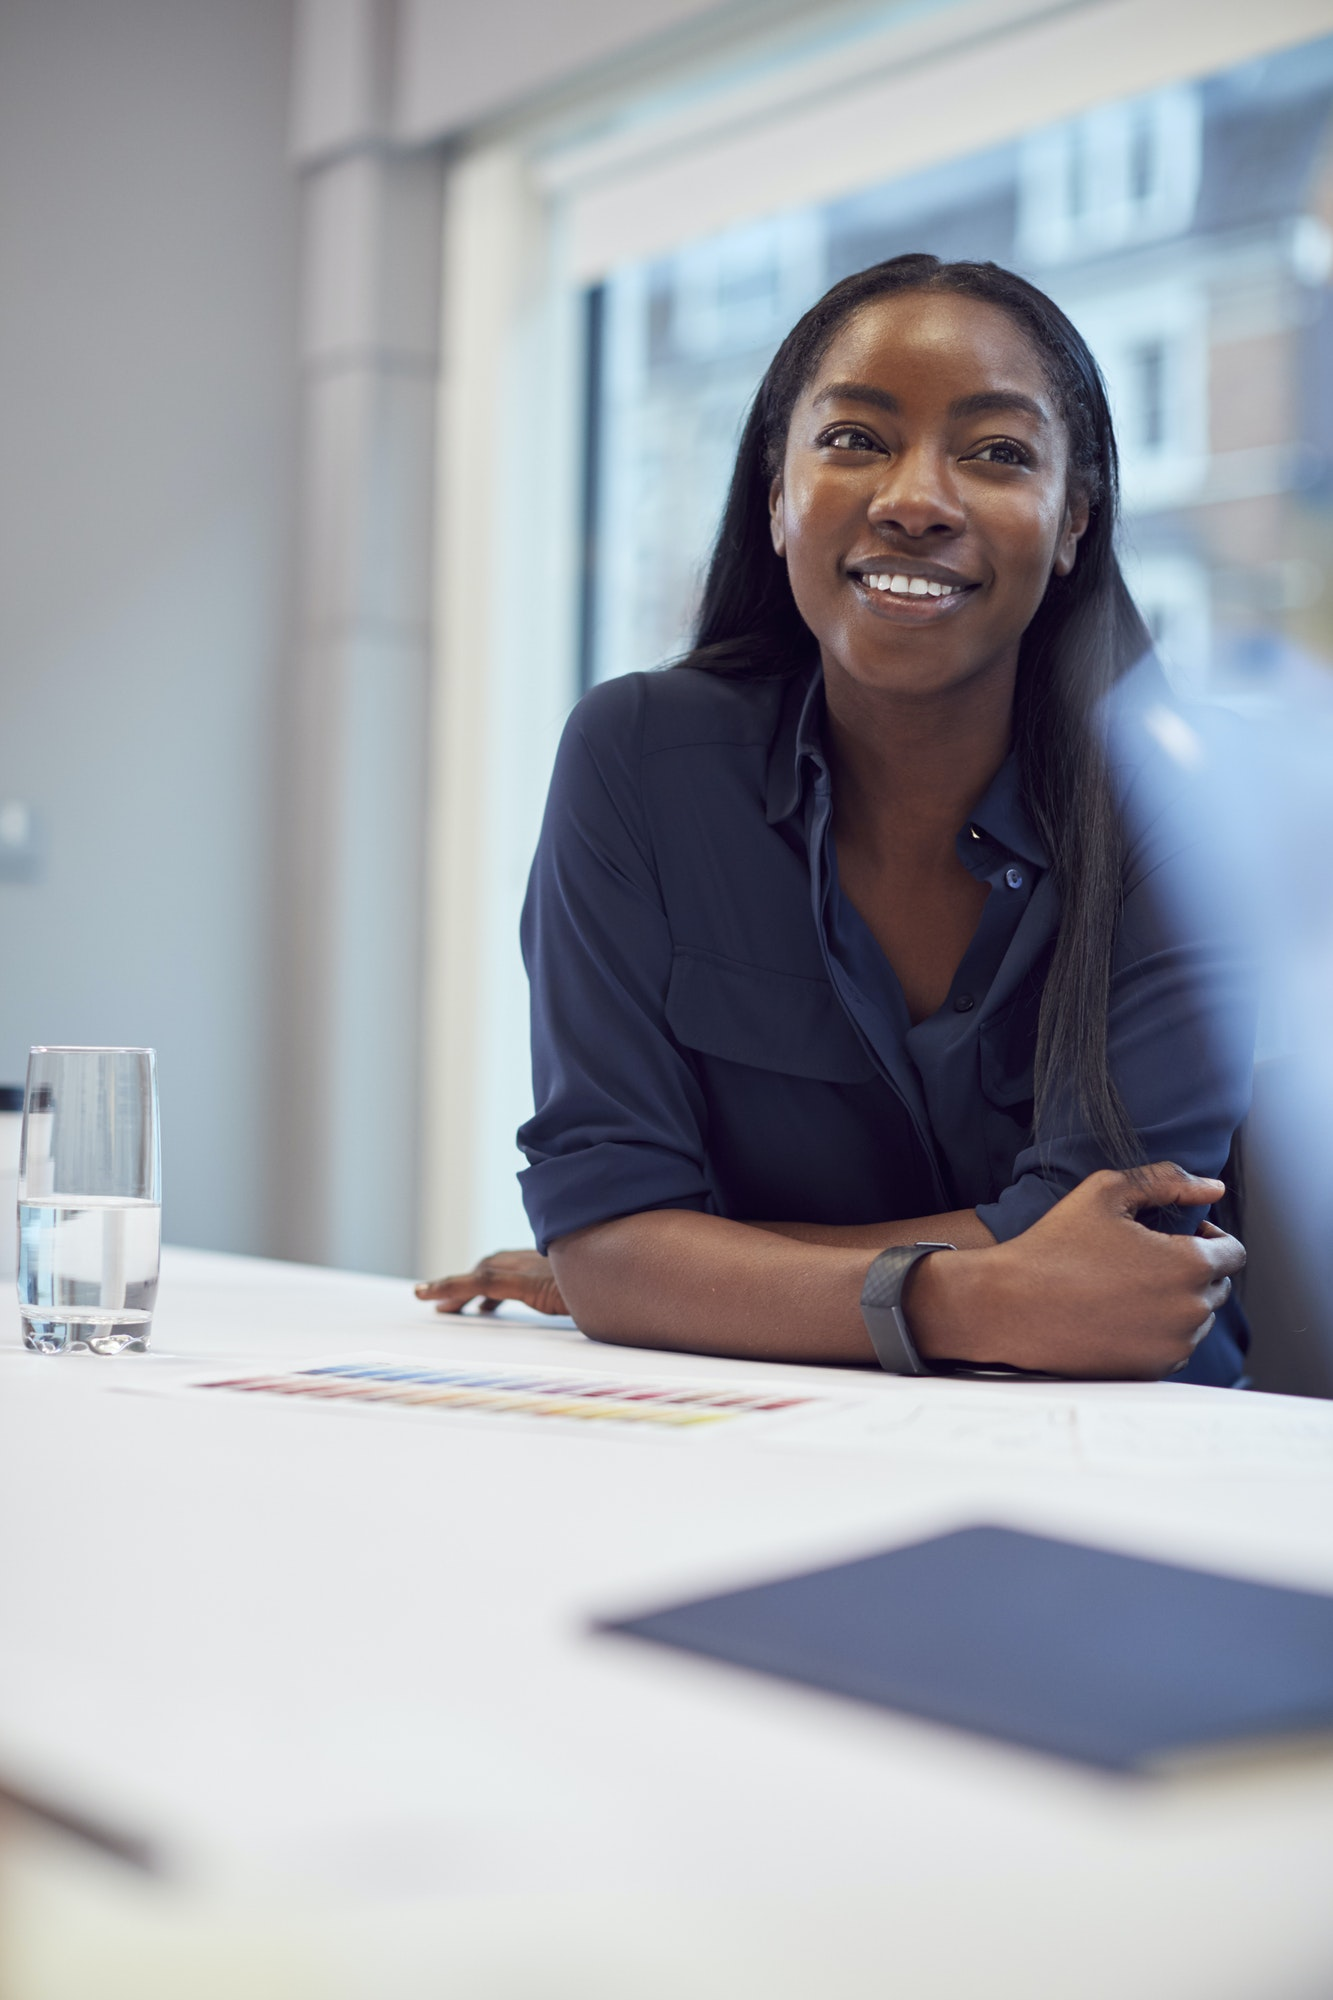 Smiling African American Businesswoman Sitting At Table In Office Meeting Room